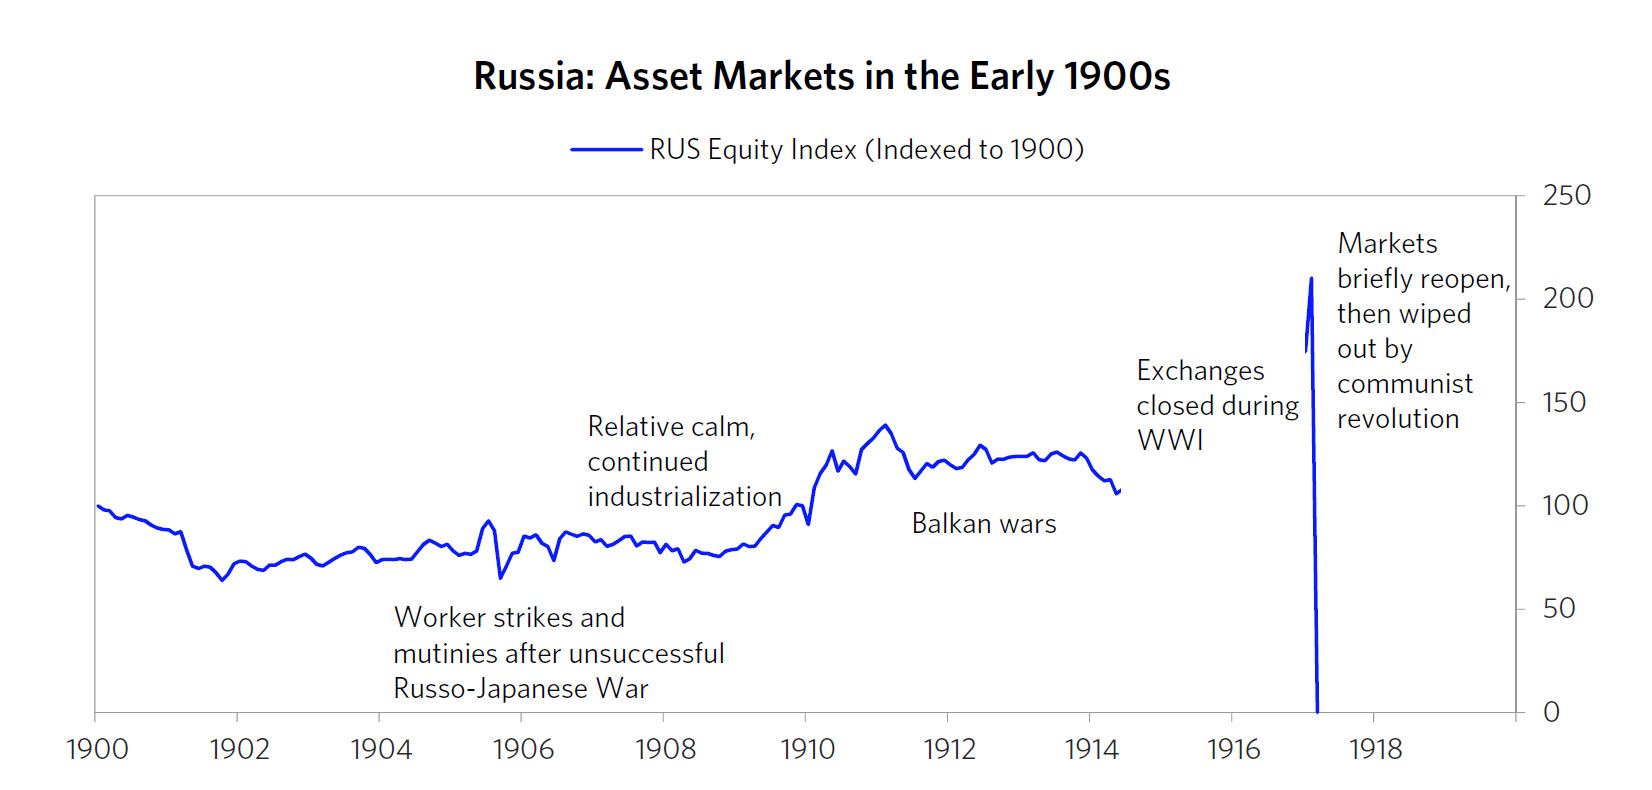 Russia Equity Index to 1900